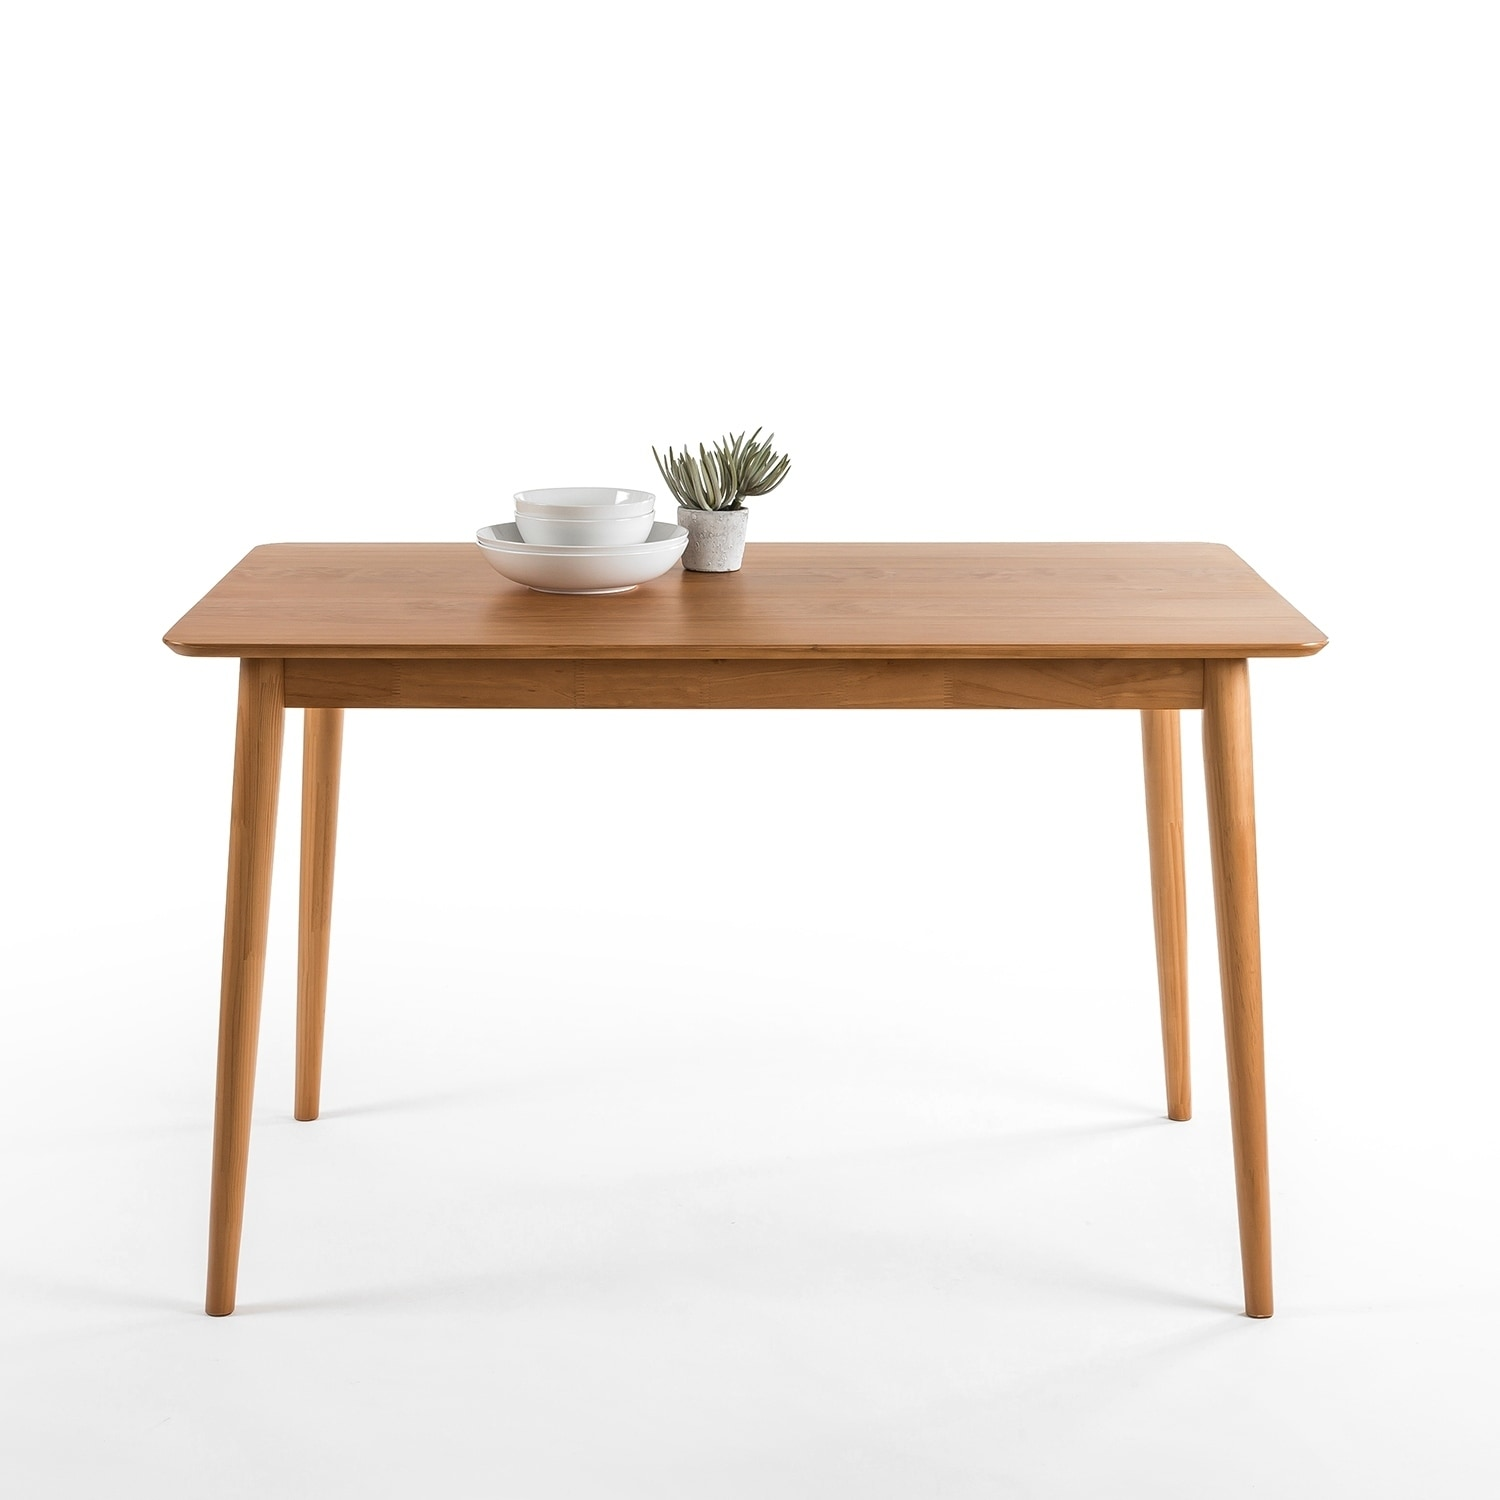 Priage By Zinus 47 Natural Wood Dining Table Overstock 19628332